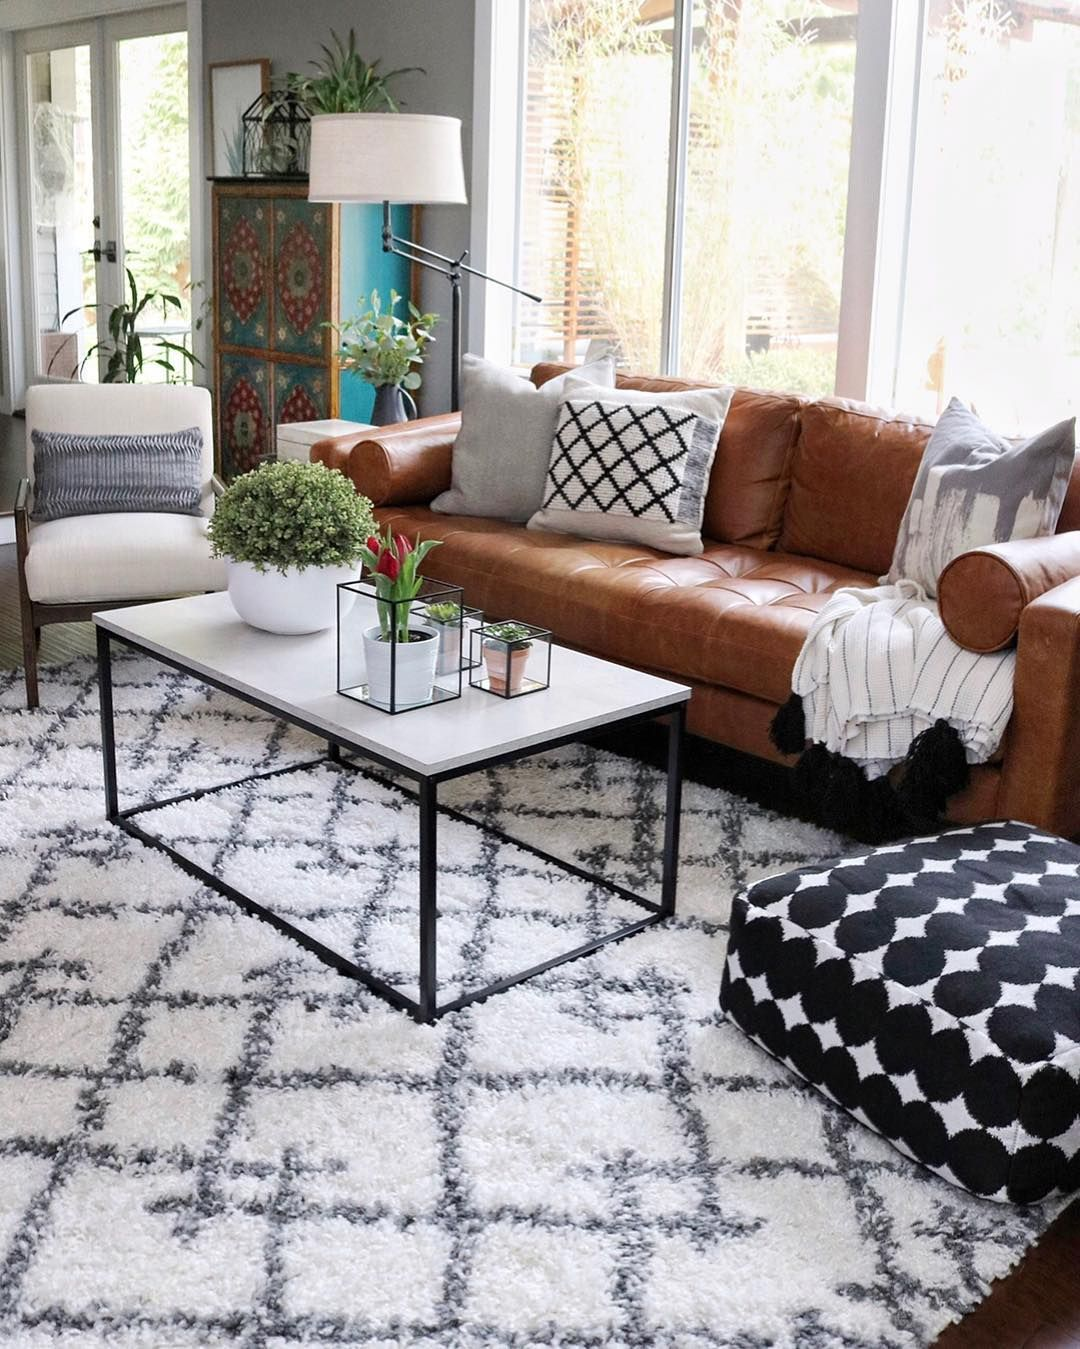 40+ Most Beautiful Living Room Ideas 2021   Page 21 of 42   hairstylesofwomens. com   Living ...